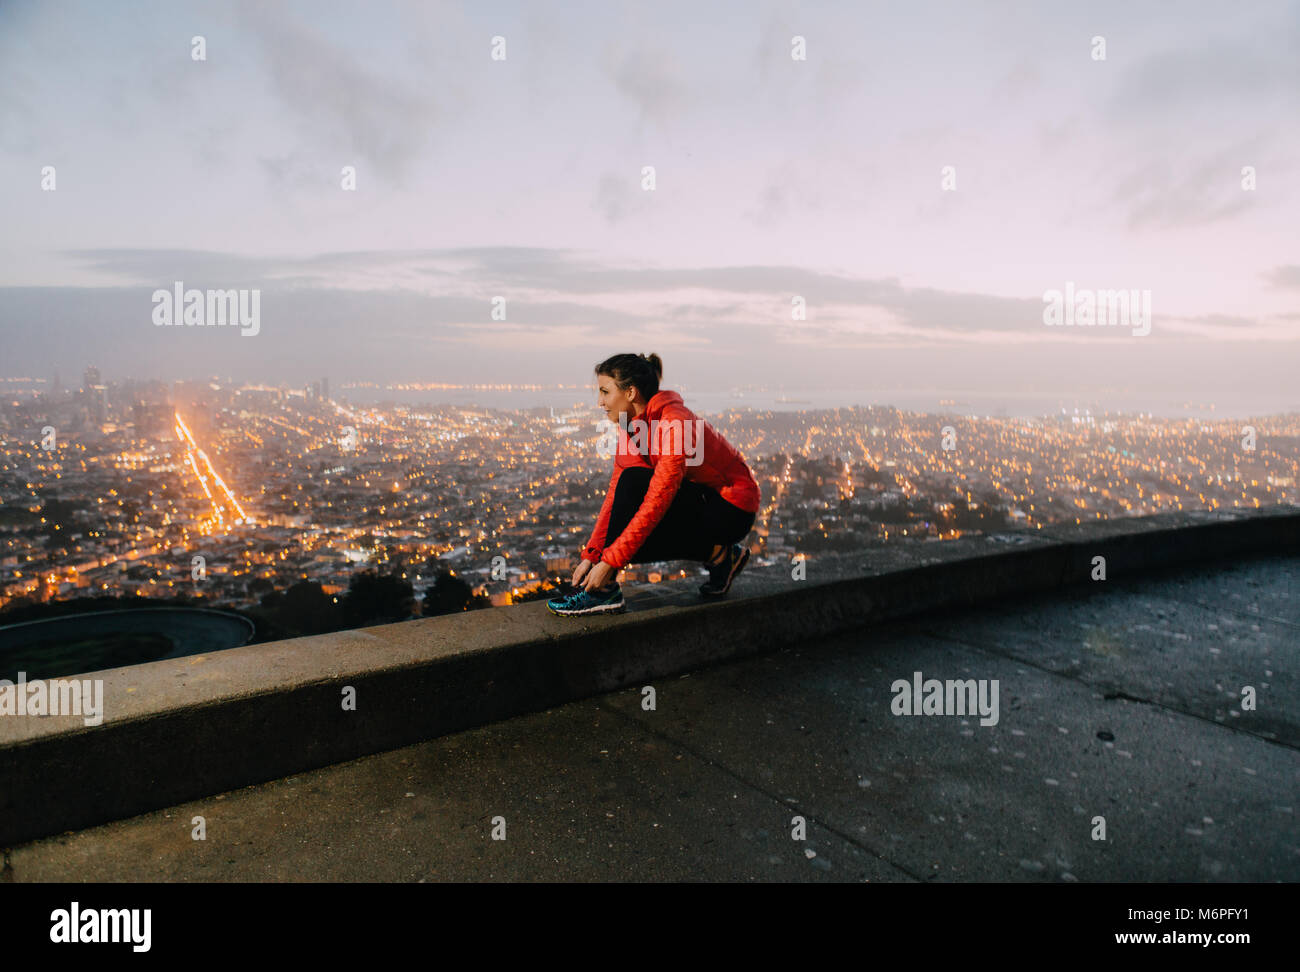 A young woman going for a morning run in San Francisco. Stock Photo